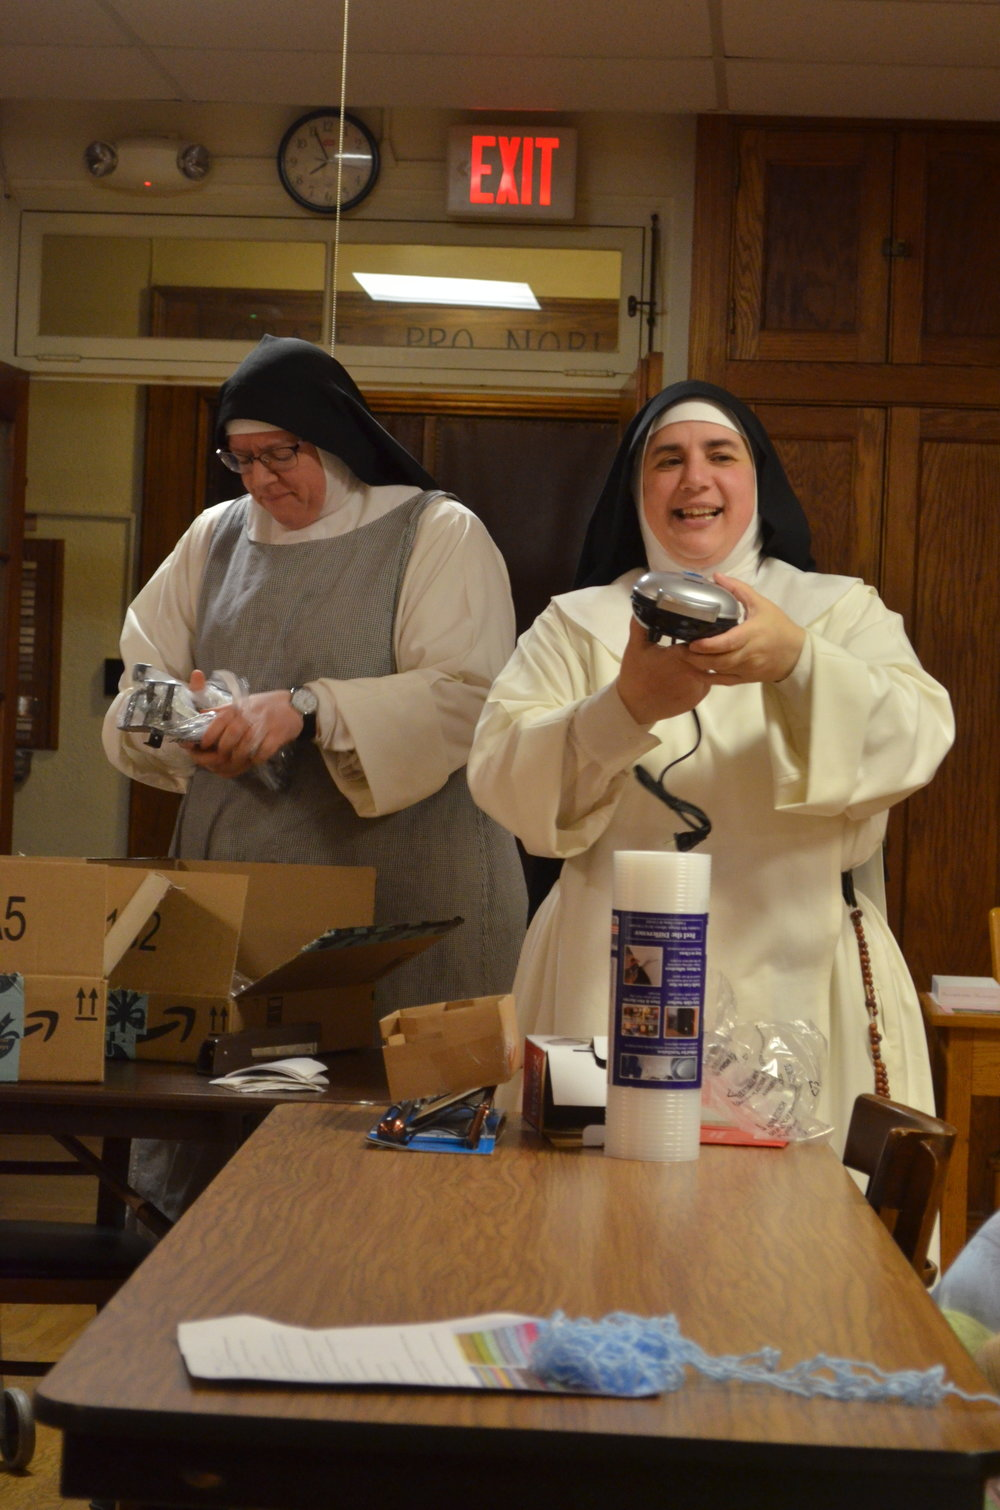 Sr. Mary Catharine holds up the mini griddle